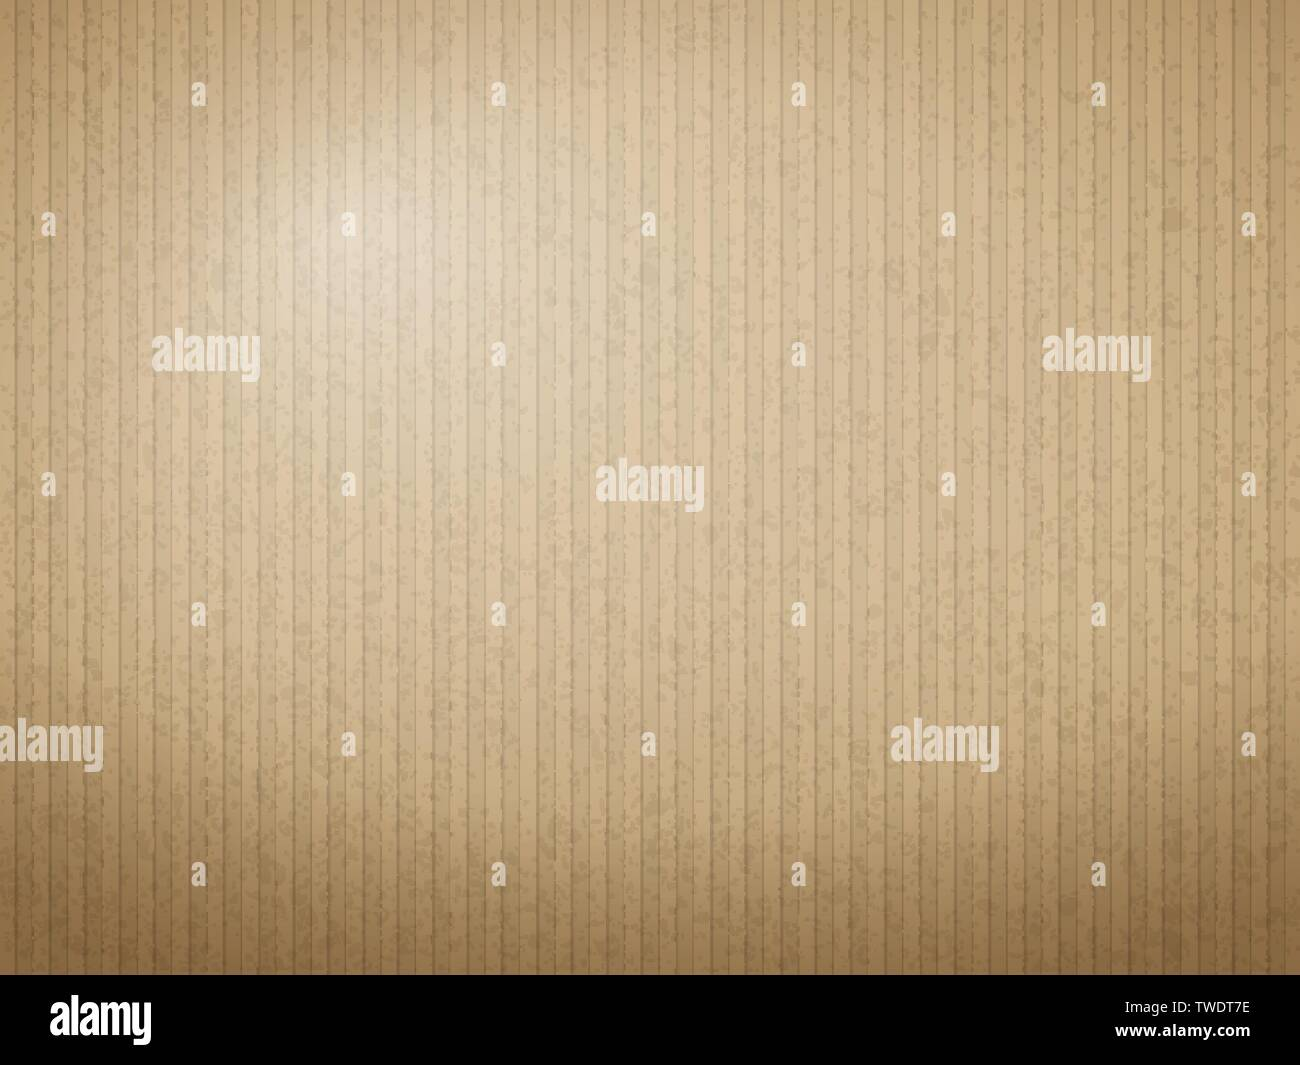 Brown cardboard paper texture for background. Vector illustration. - Stock Image